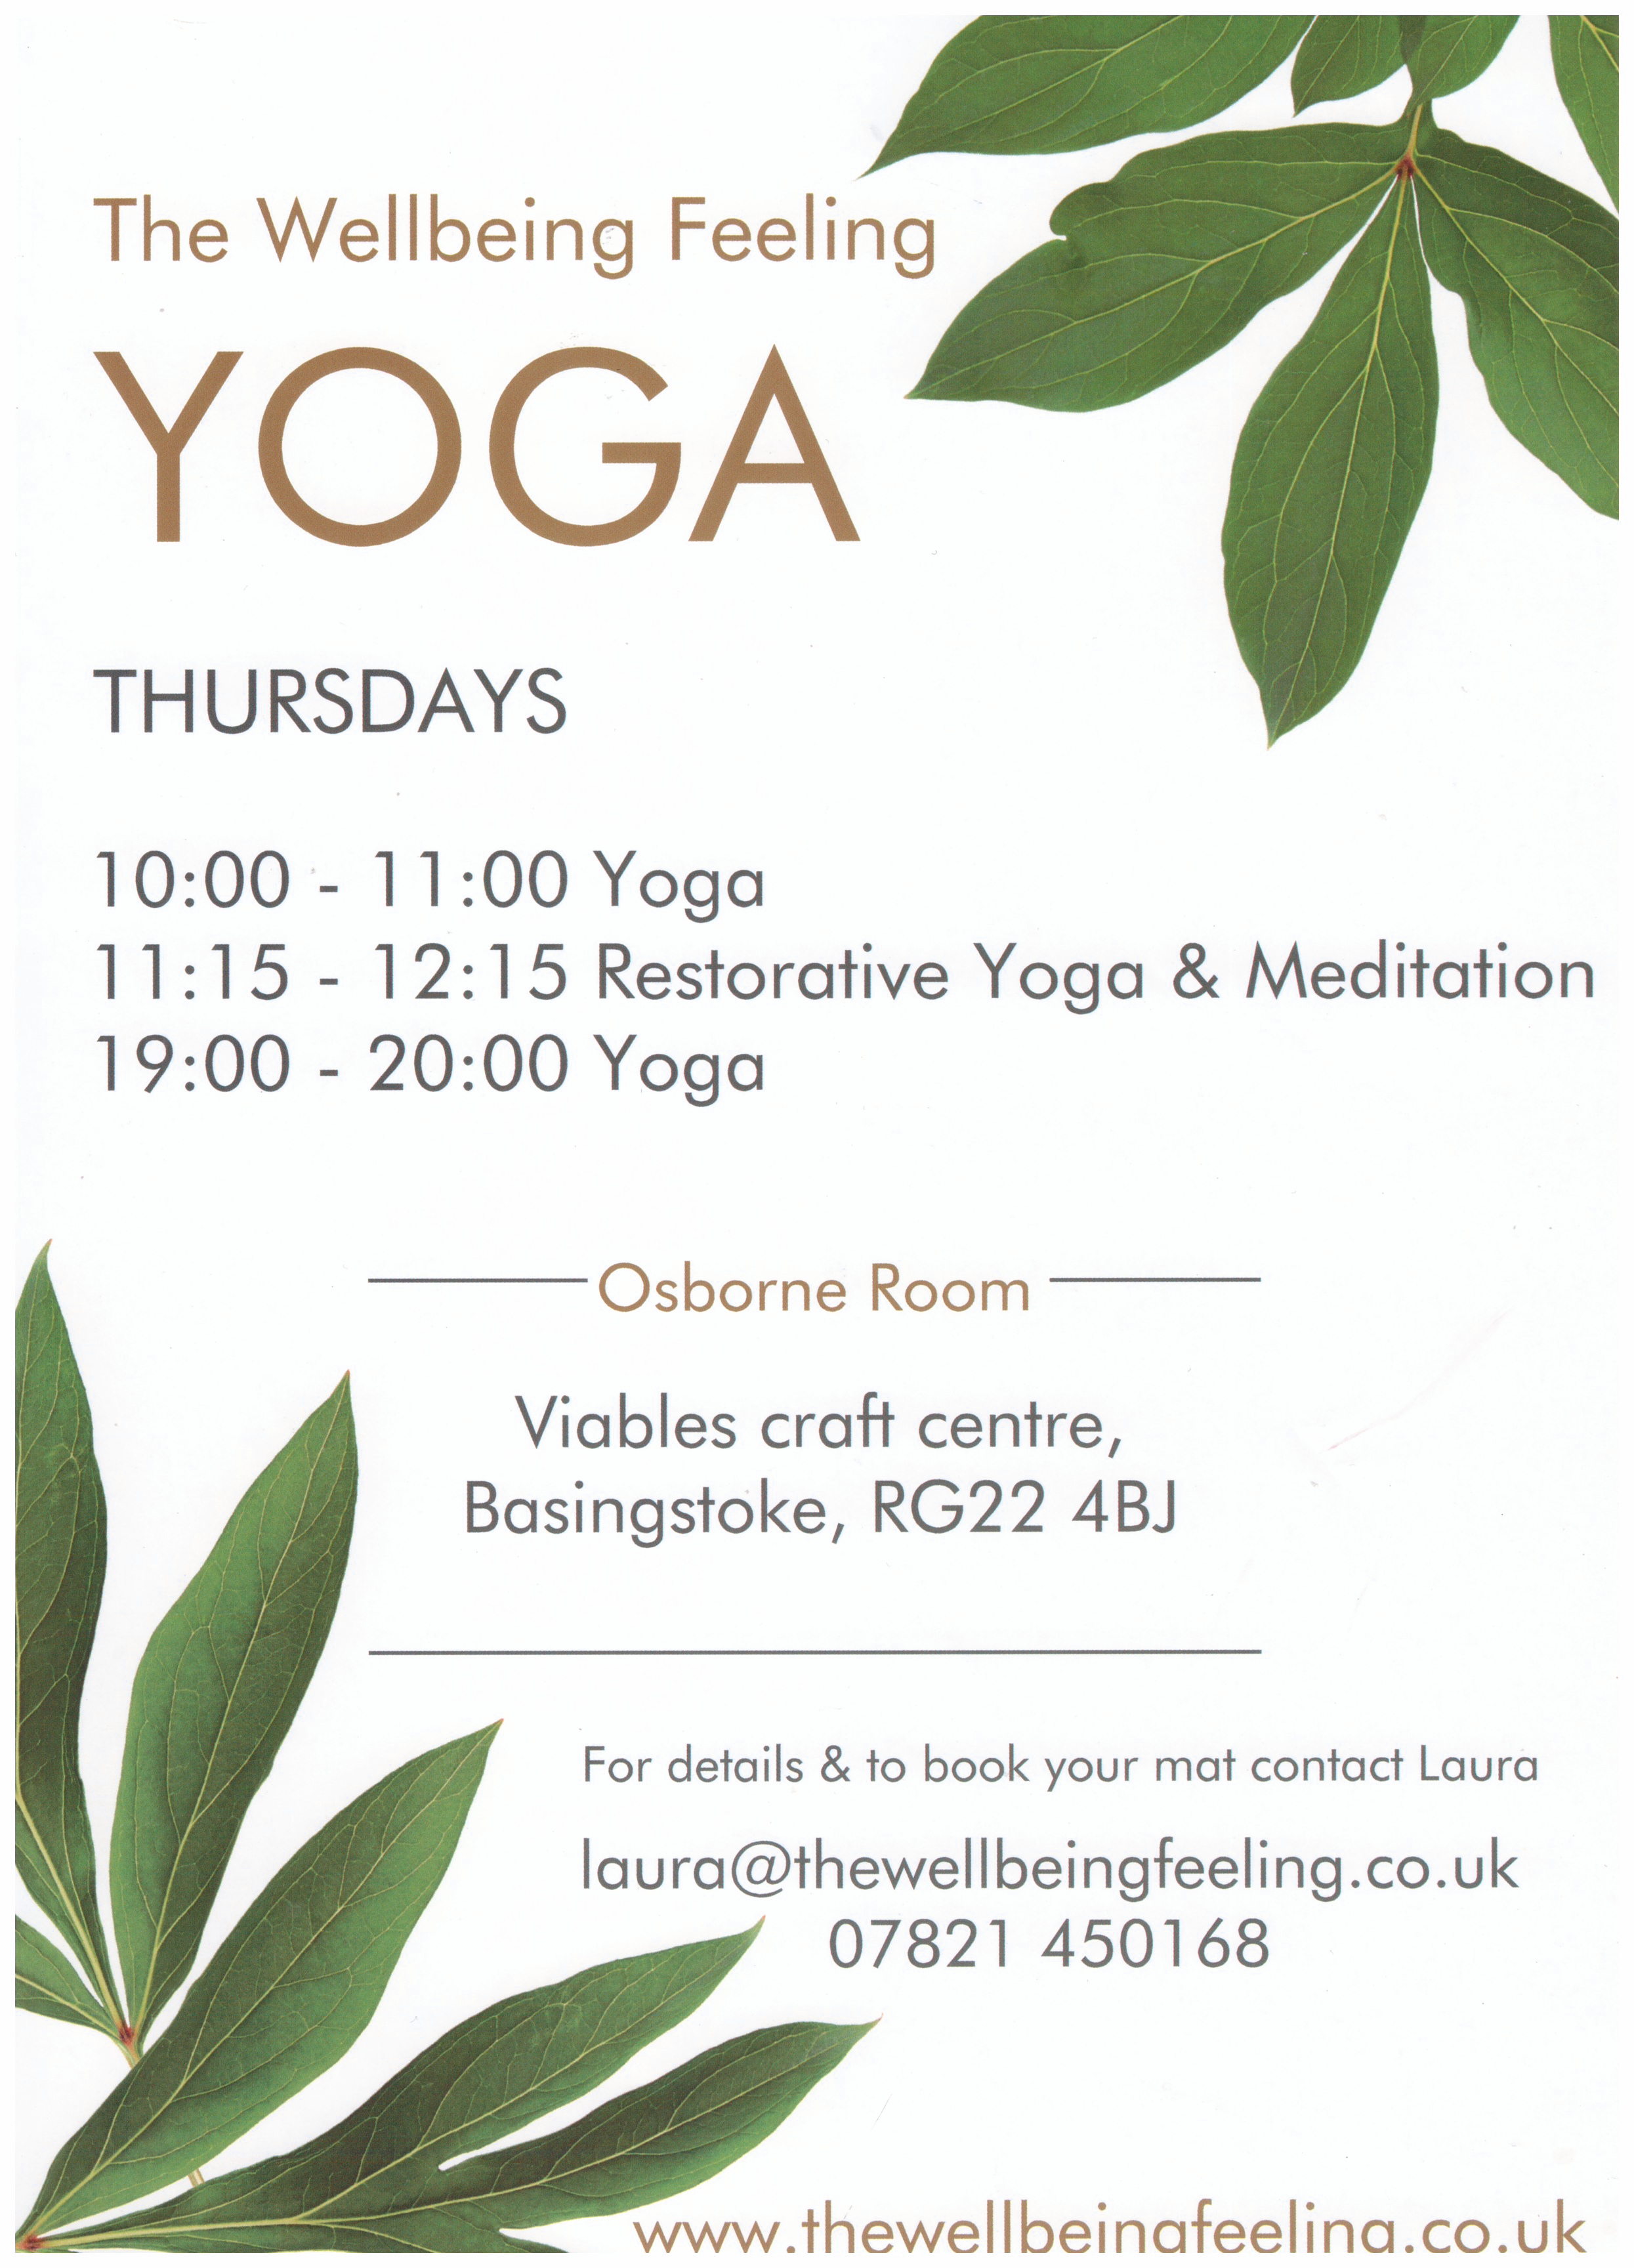 Yoga - The wellbeing feeling